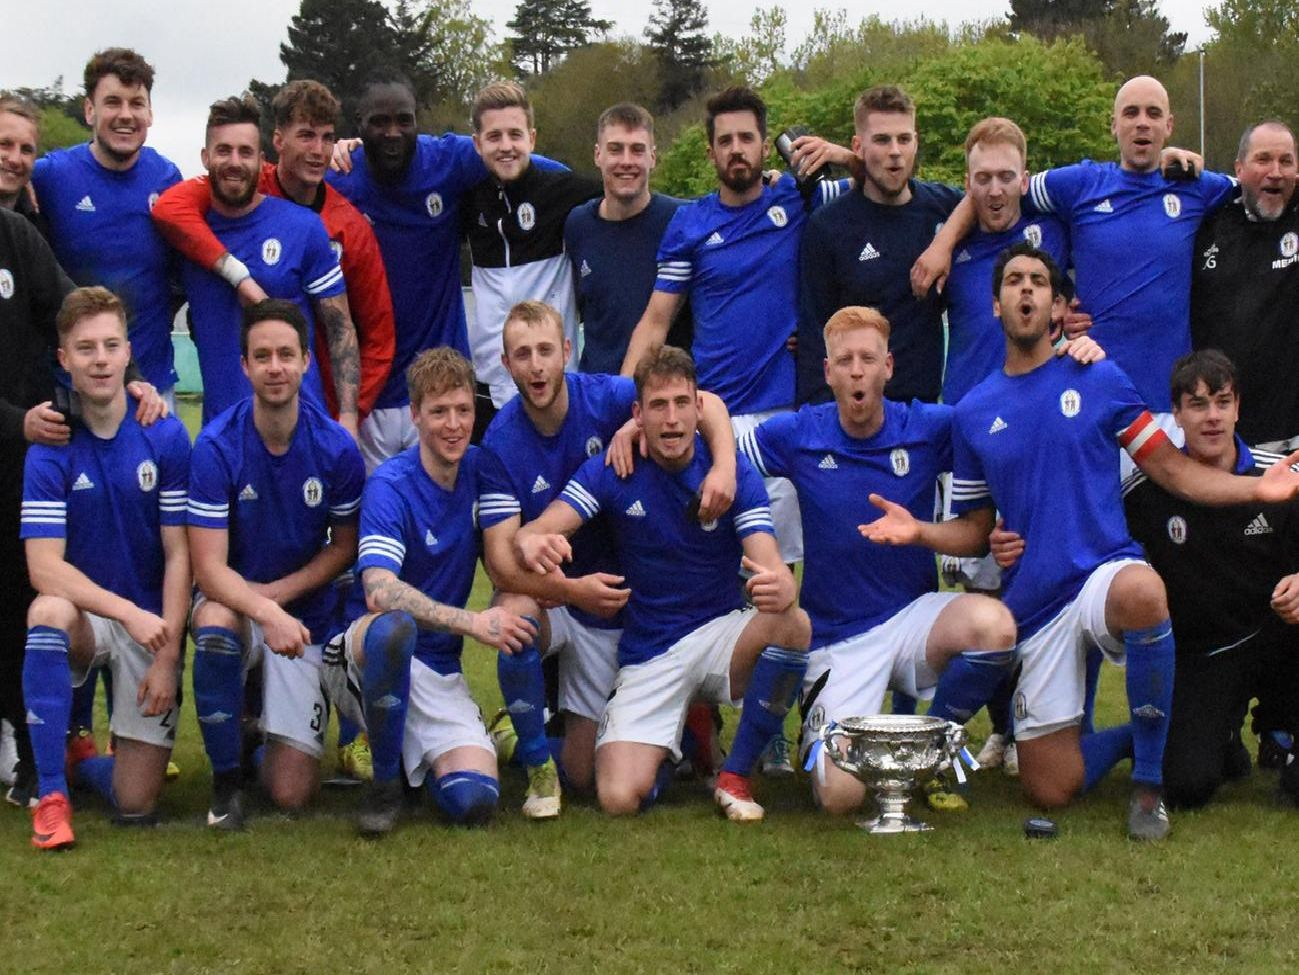 Haywards Heath Town won the double this year - the SCFL Premier and the Peter Bentley Challenge Cup. Picture by Grahame Lehkyj